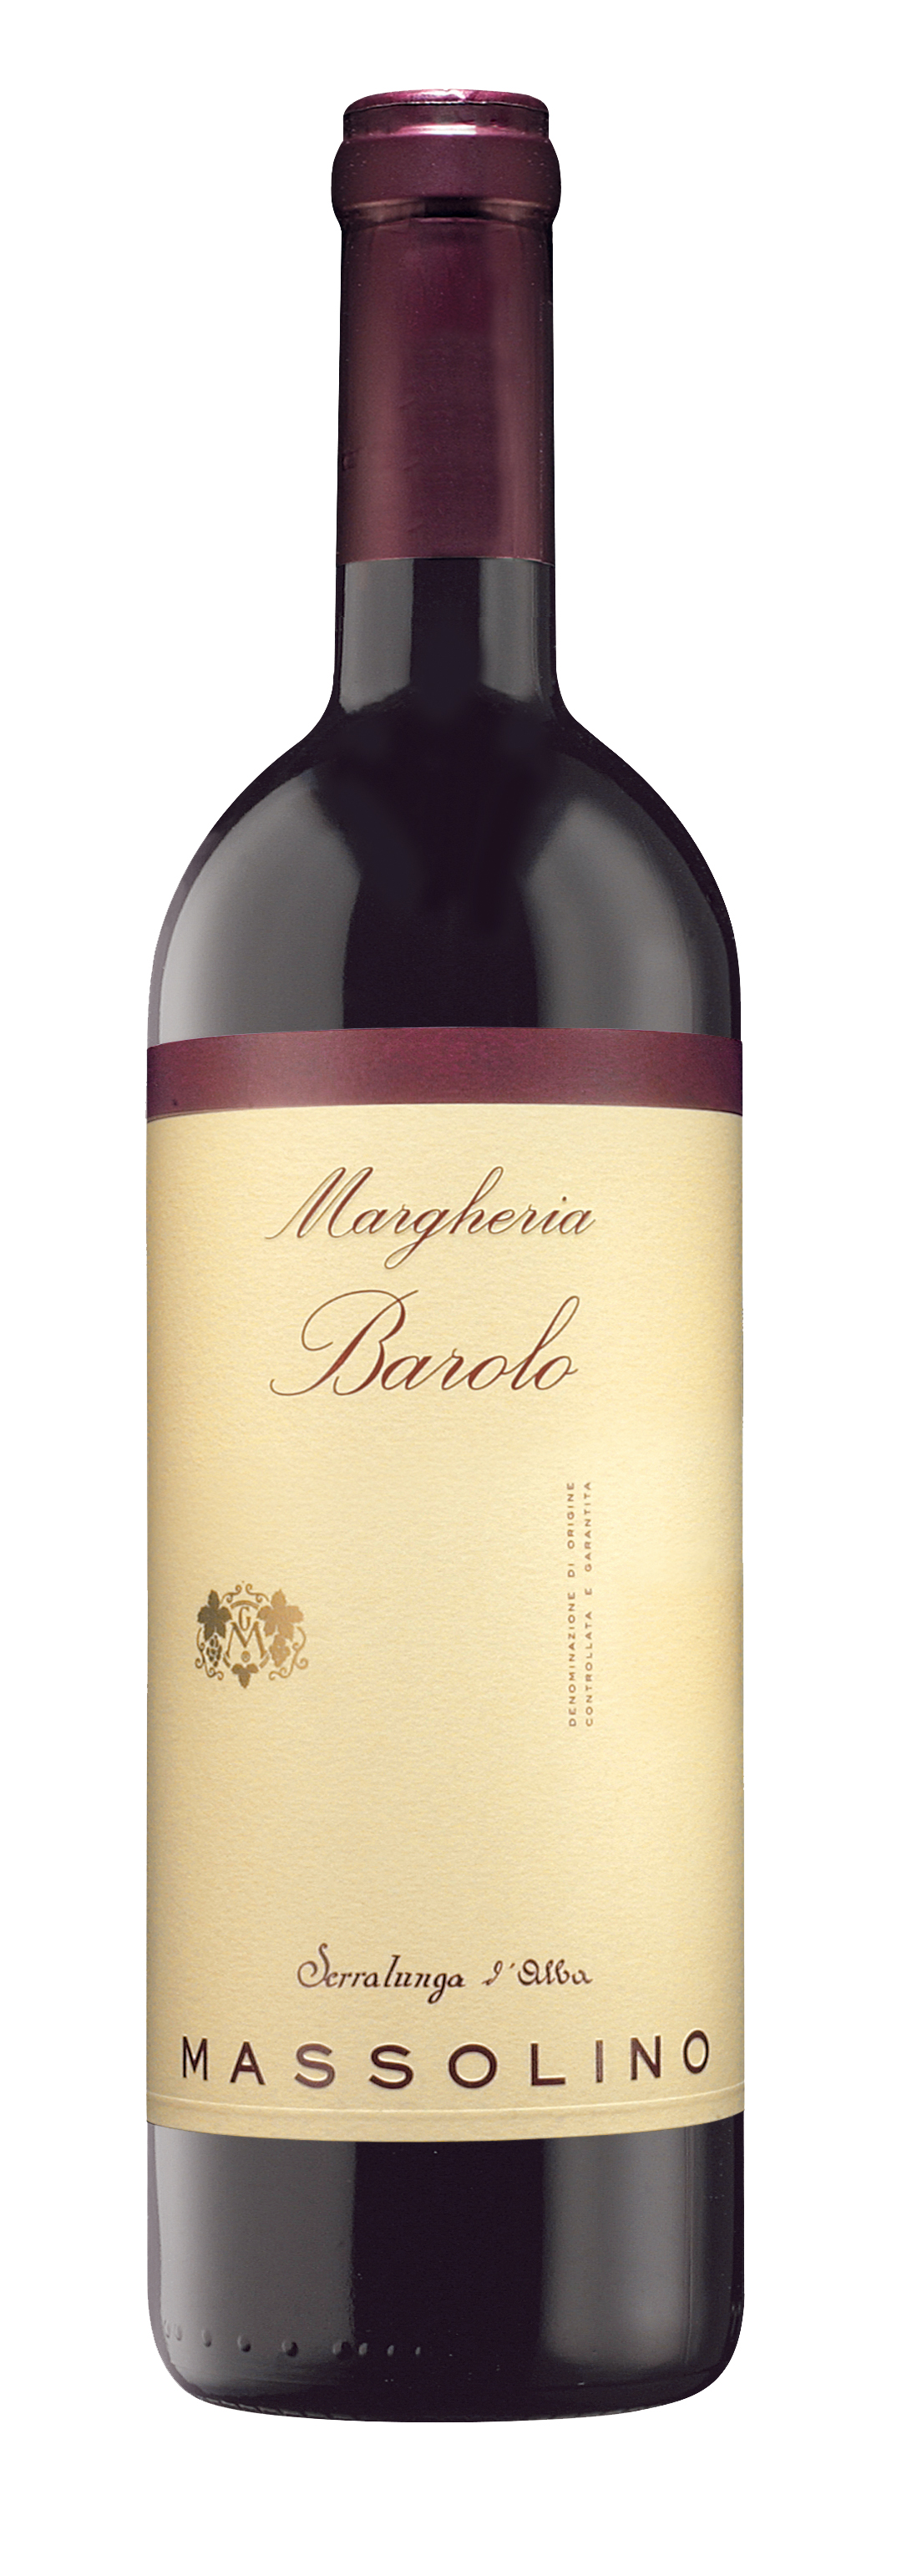 Massolino Margheria Barolo Bottle.jpg